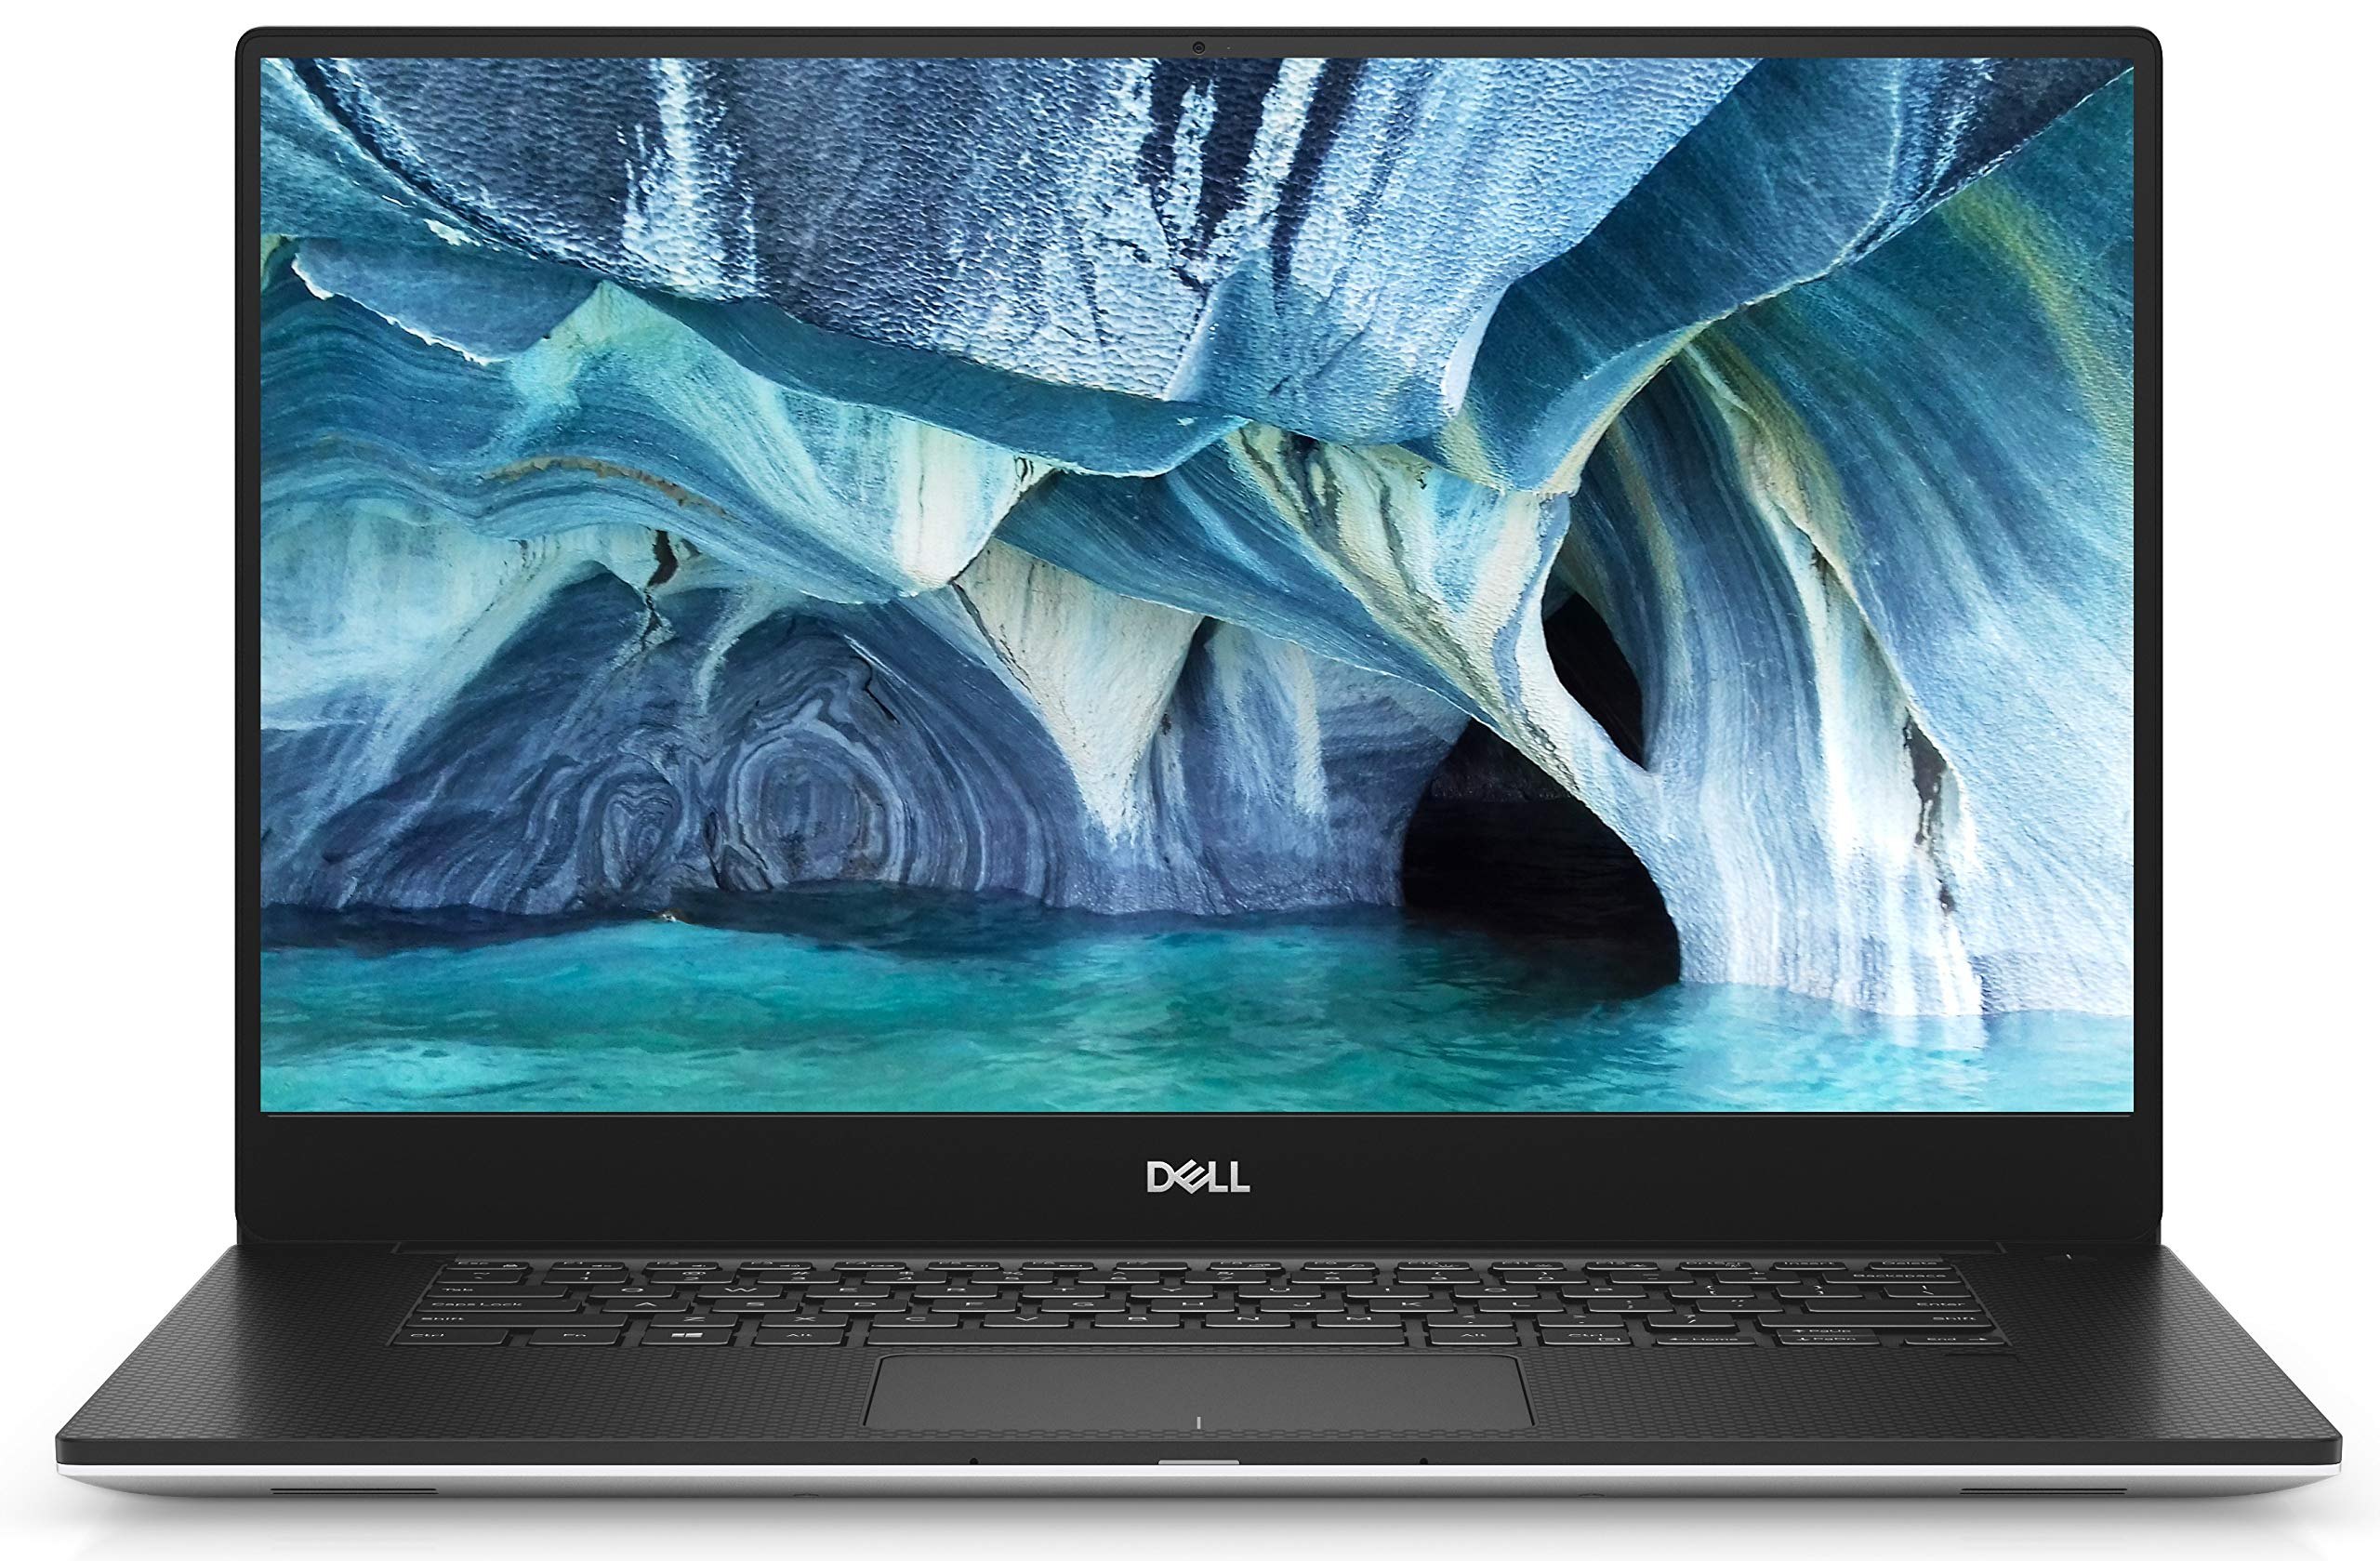 Dell XPS 15 7590 Laptop 15.6 inch, 4K UHD OLED InfinityEdge, 9th Gen Intel Core i7-9750H, NVIDIA GeForce GTX 1650 4GB GDDR5, 256GB SSD, 16GB RAM, Windows 10 Home, XPS7590-7572SLV-PUS, 15-15.99 inches